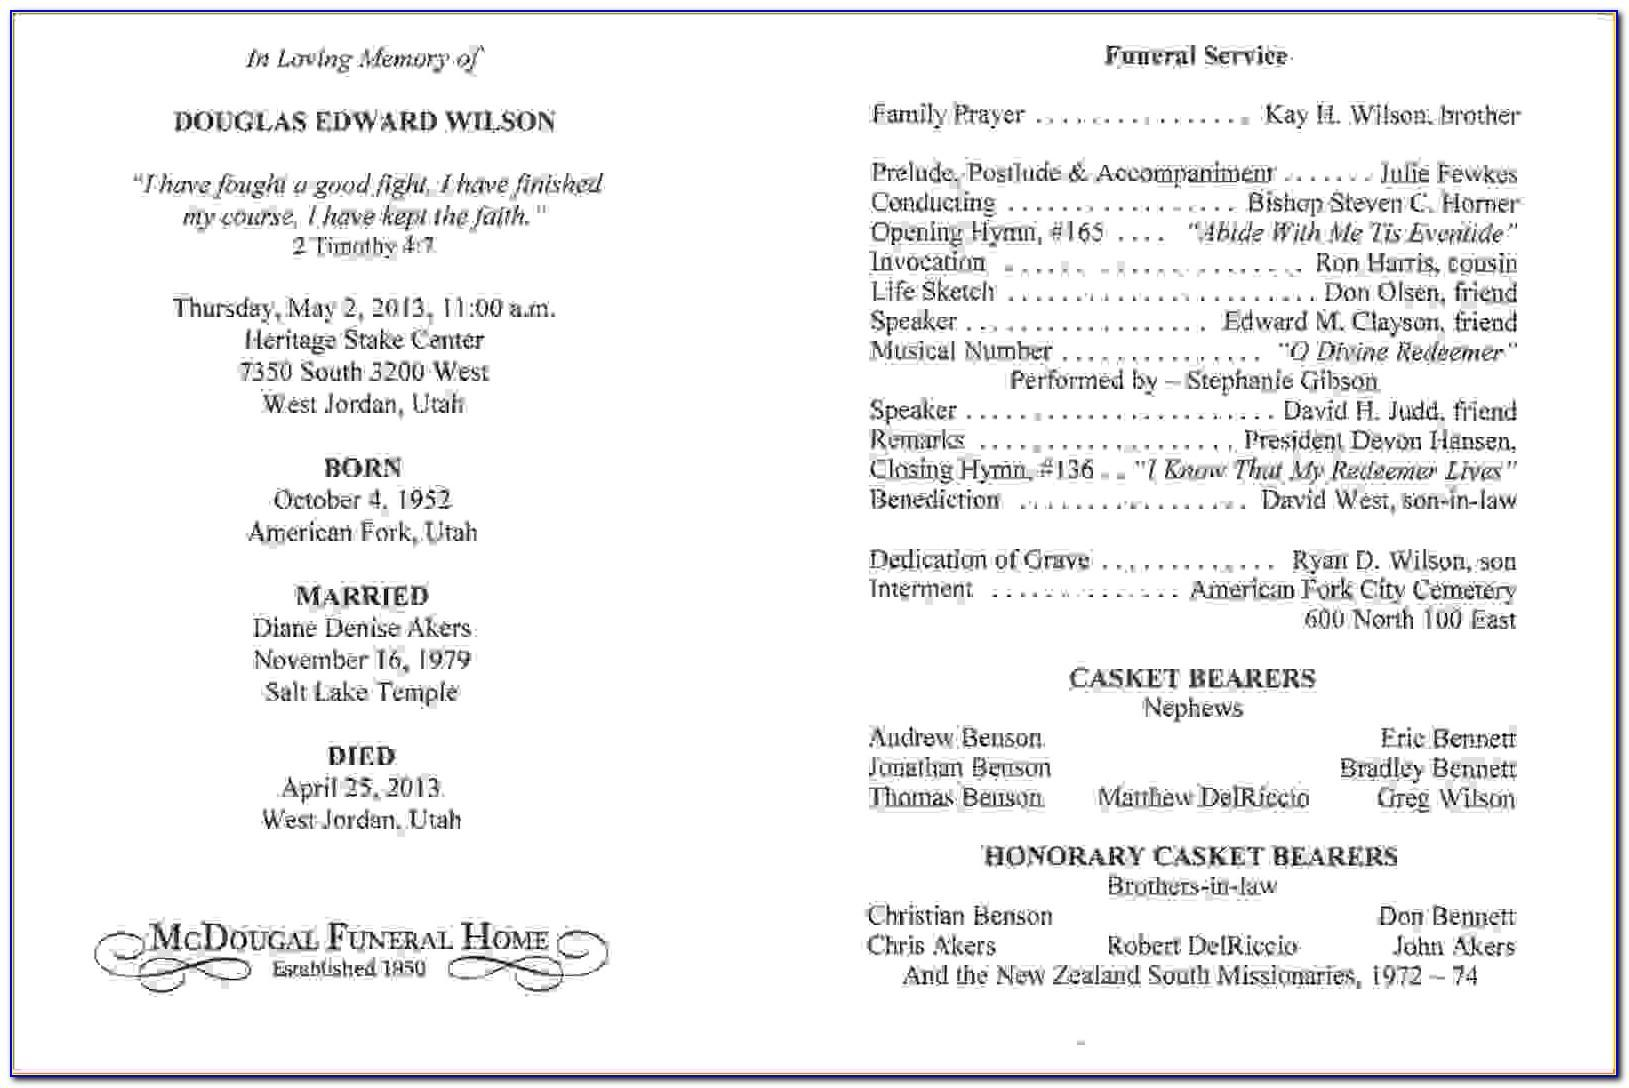 Memorial Mass Program Templatememorial Mass Program Template